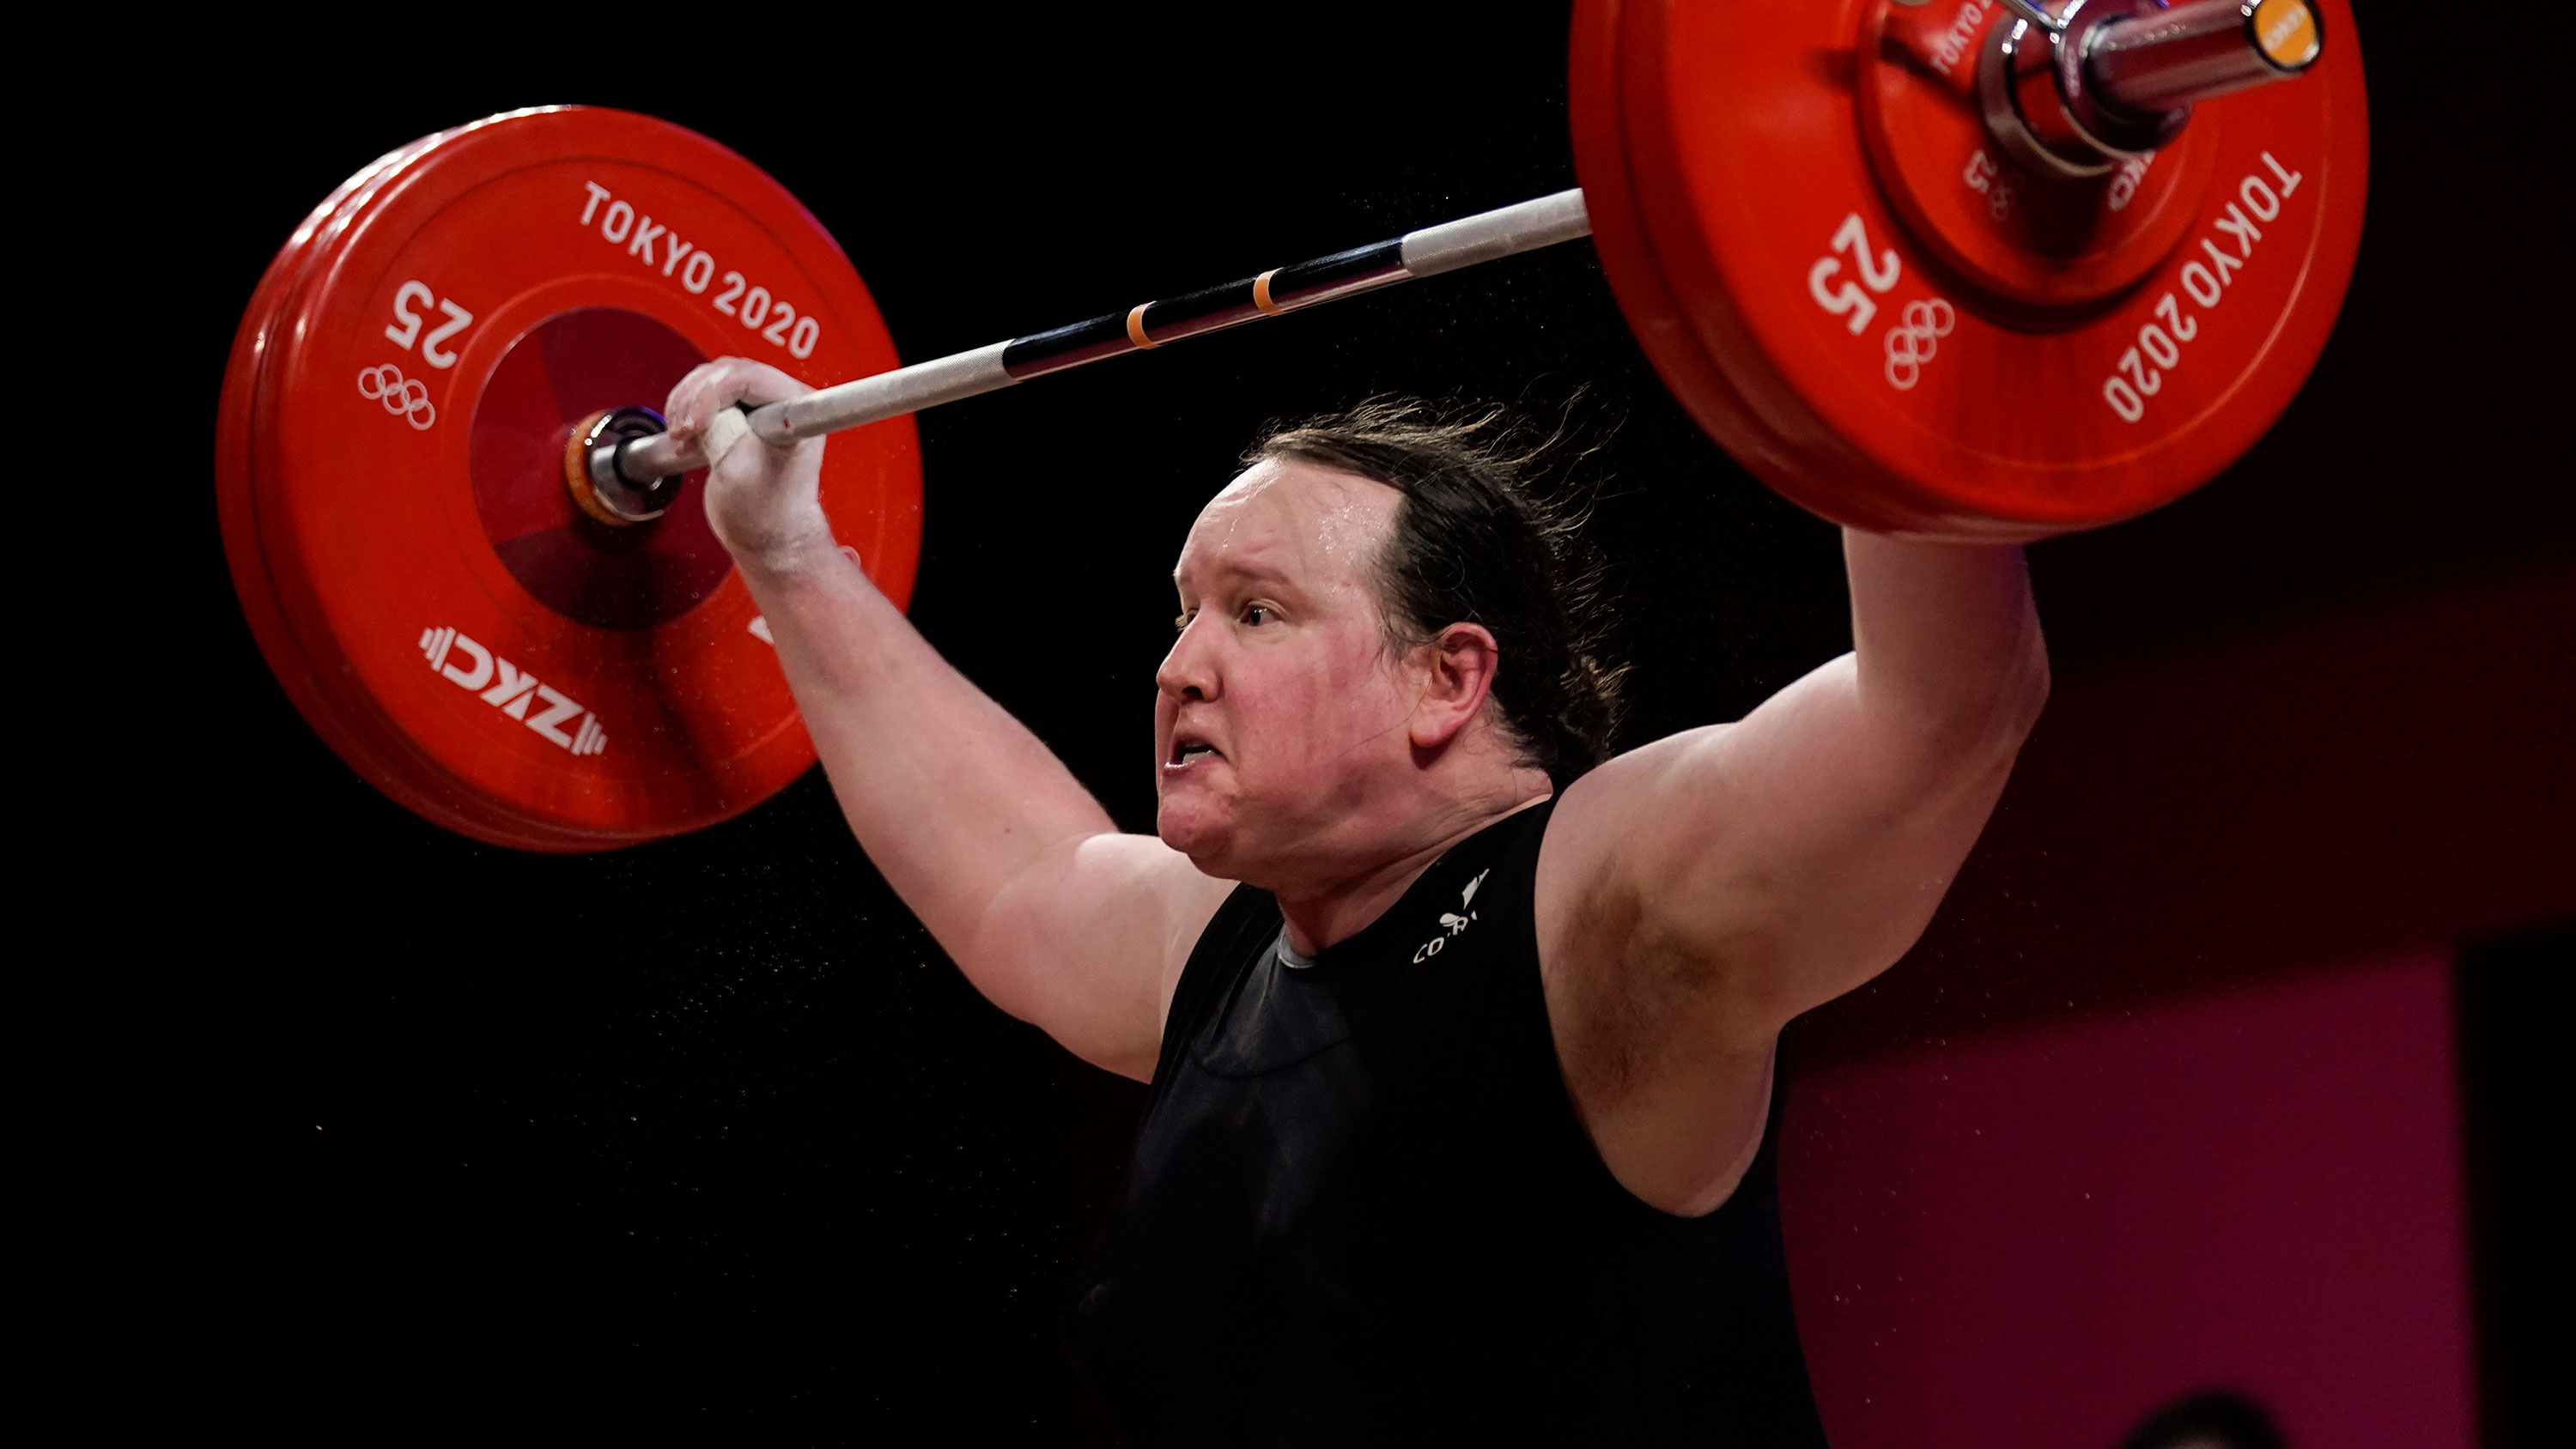 New Zealand's Laurel Hubbard competes in weightlifting on August 2. Sheis the first openly transgender woman to competein the 125-year history of the Olympics.